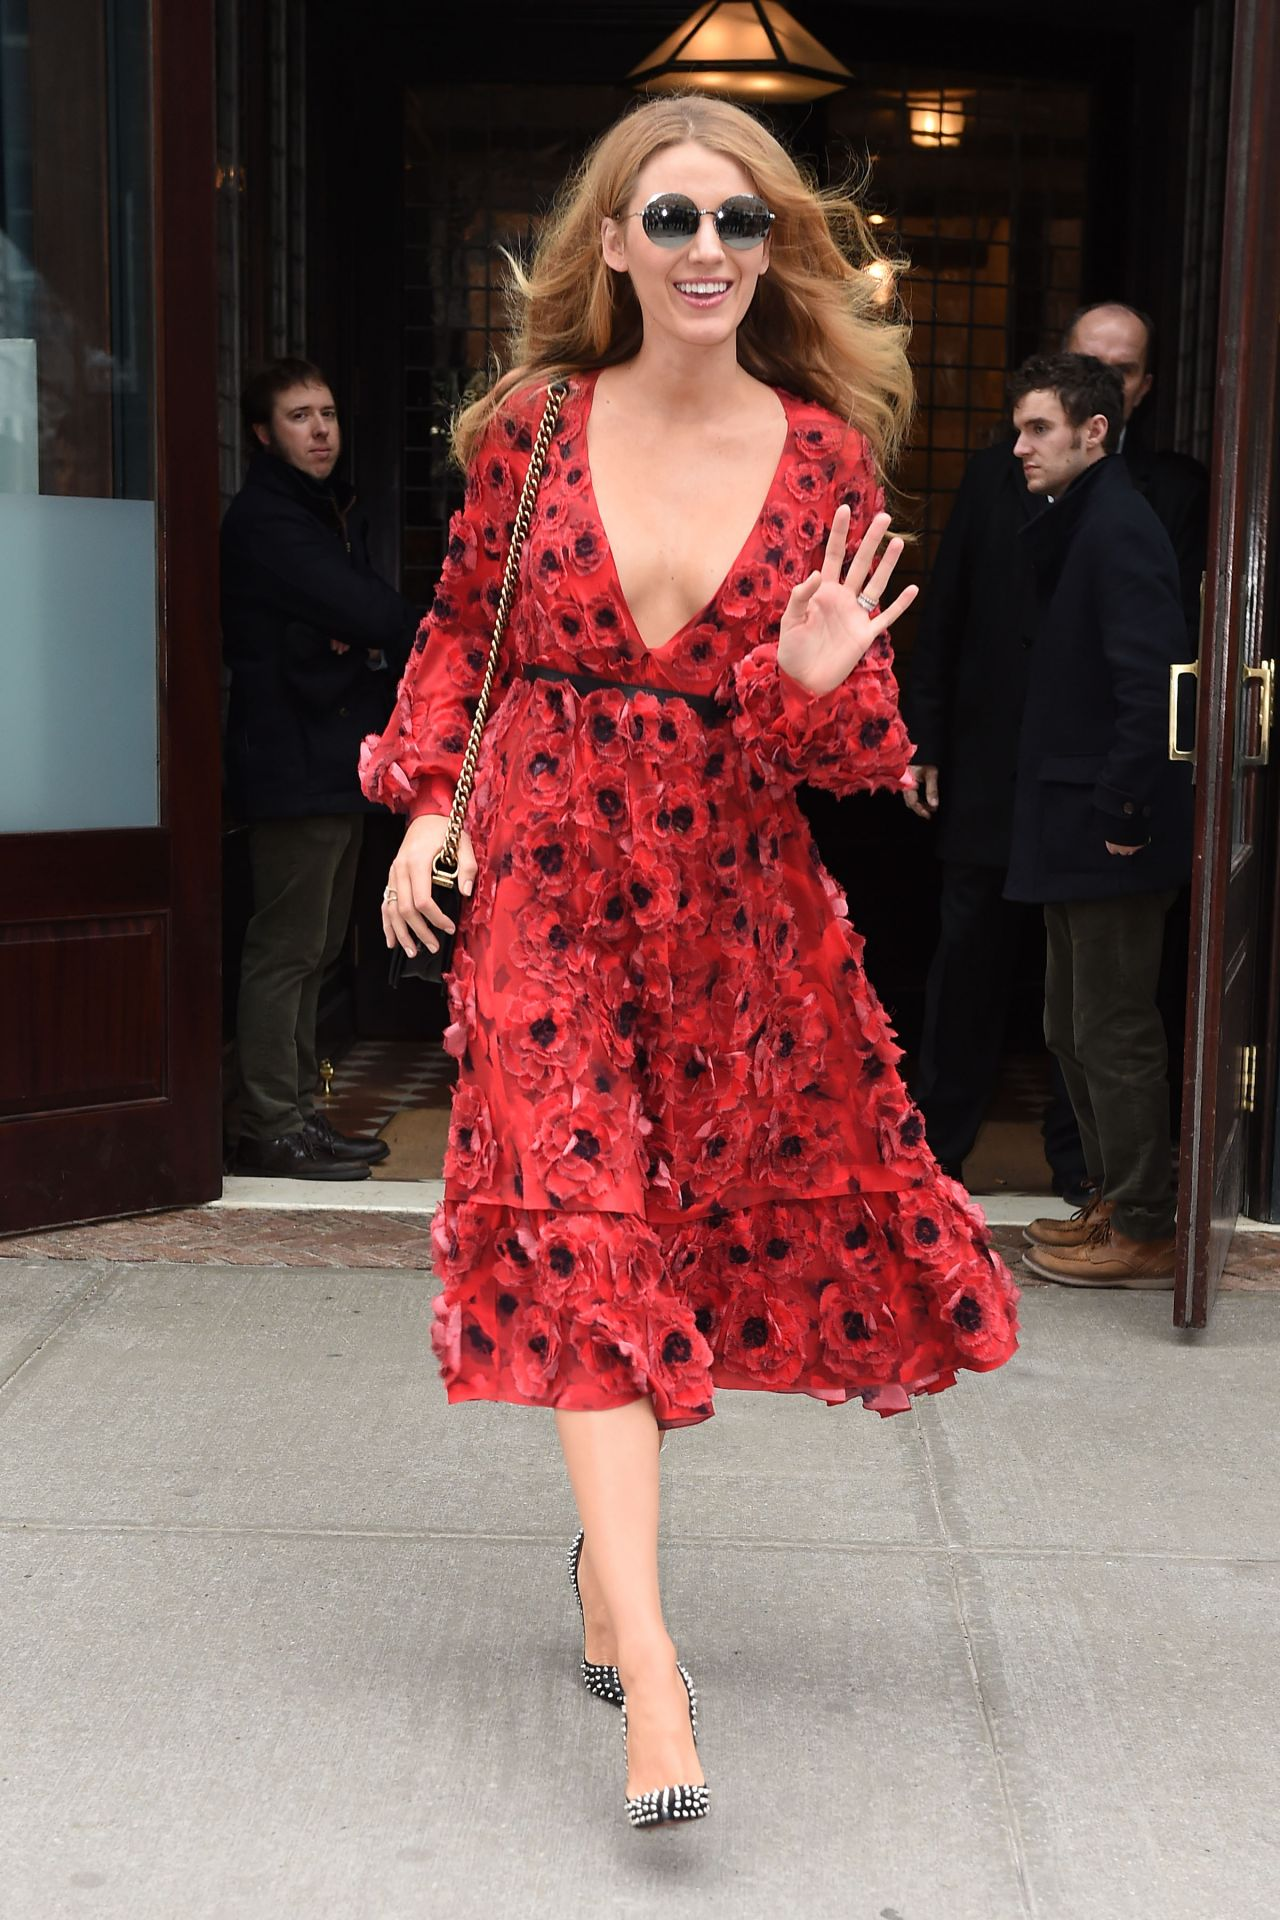 blake-lively-style-leaving-her-hotel-and-shopping-in-new-york-city-ny-2-17-2016-13